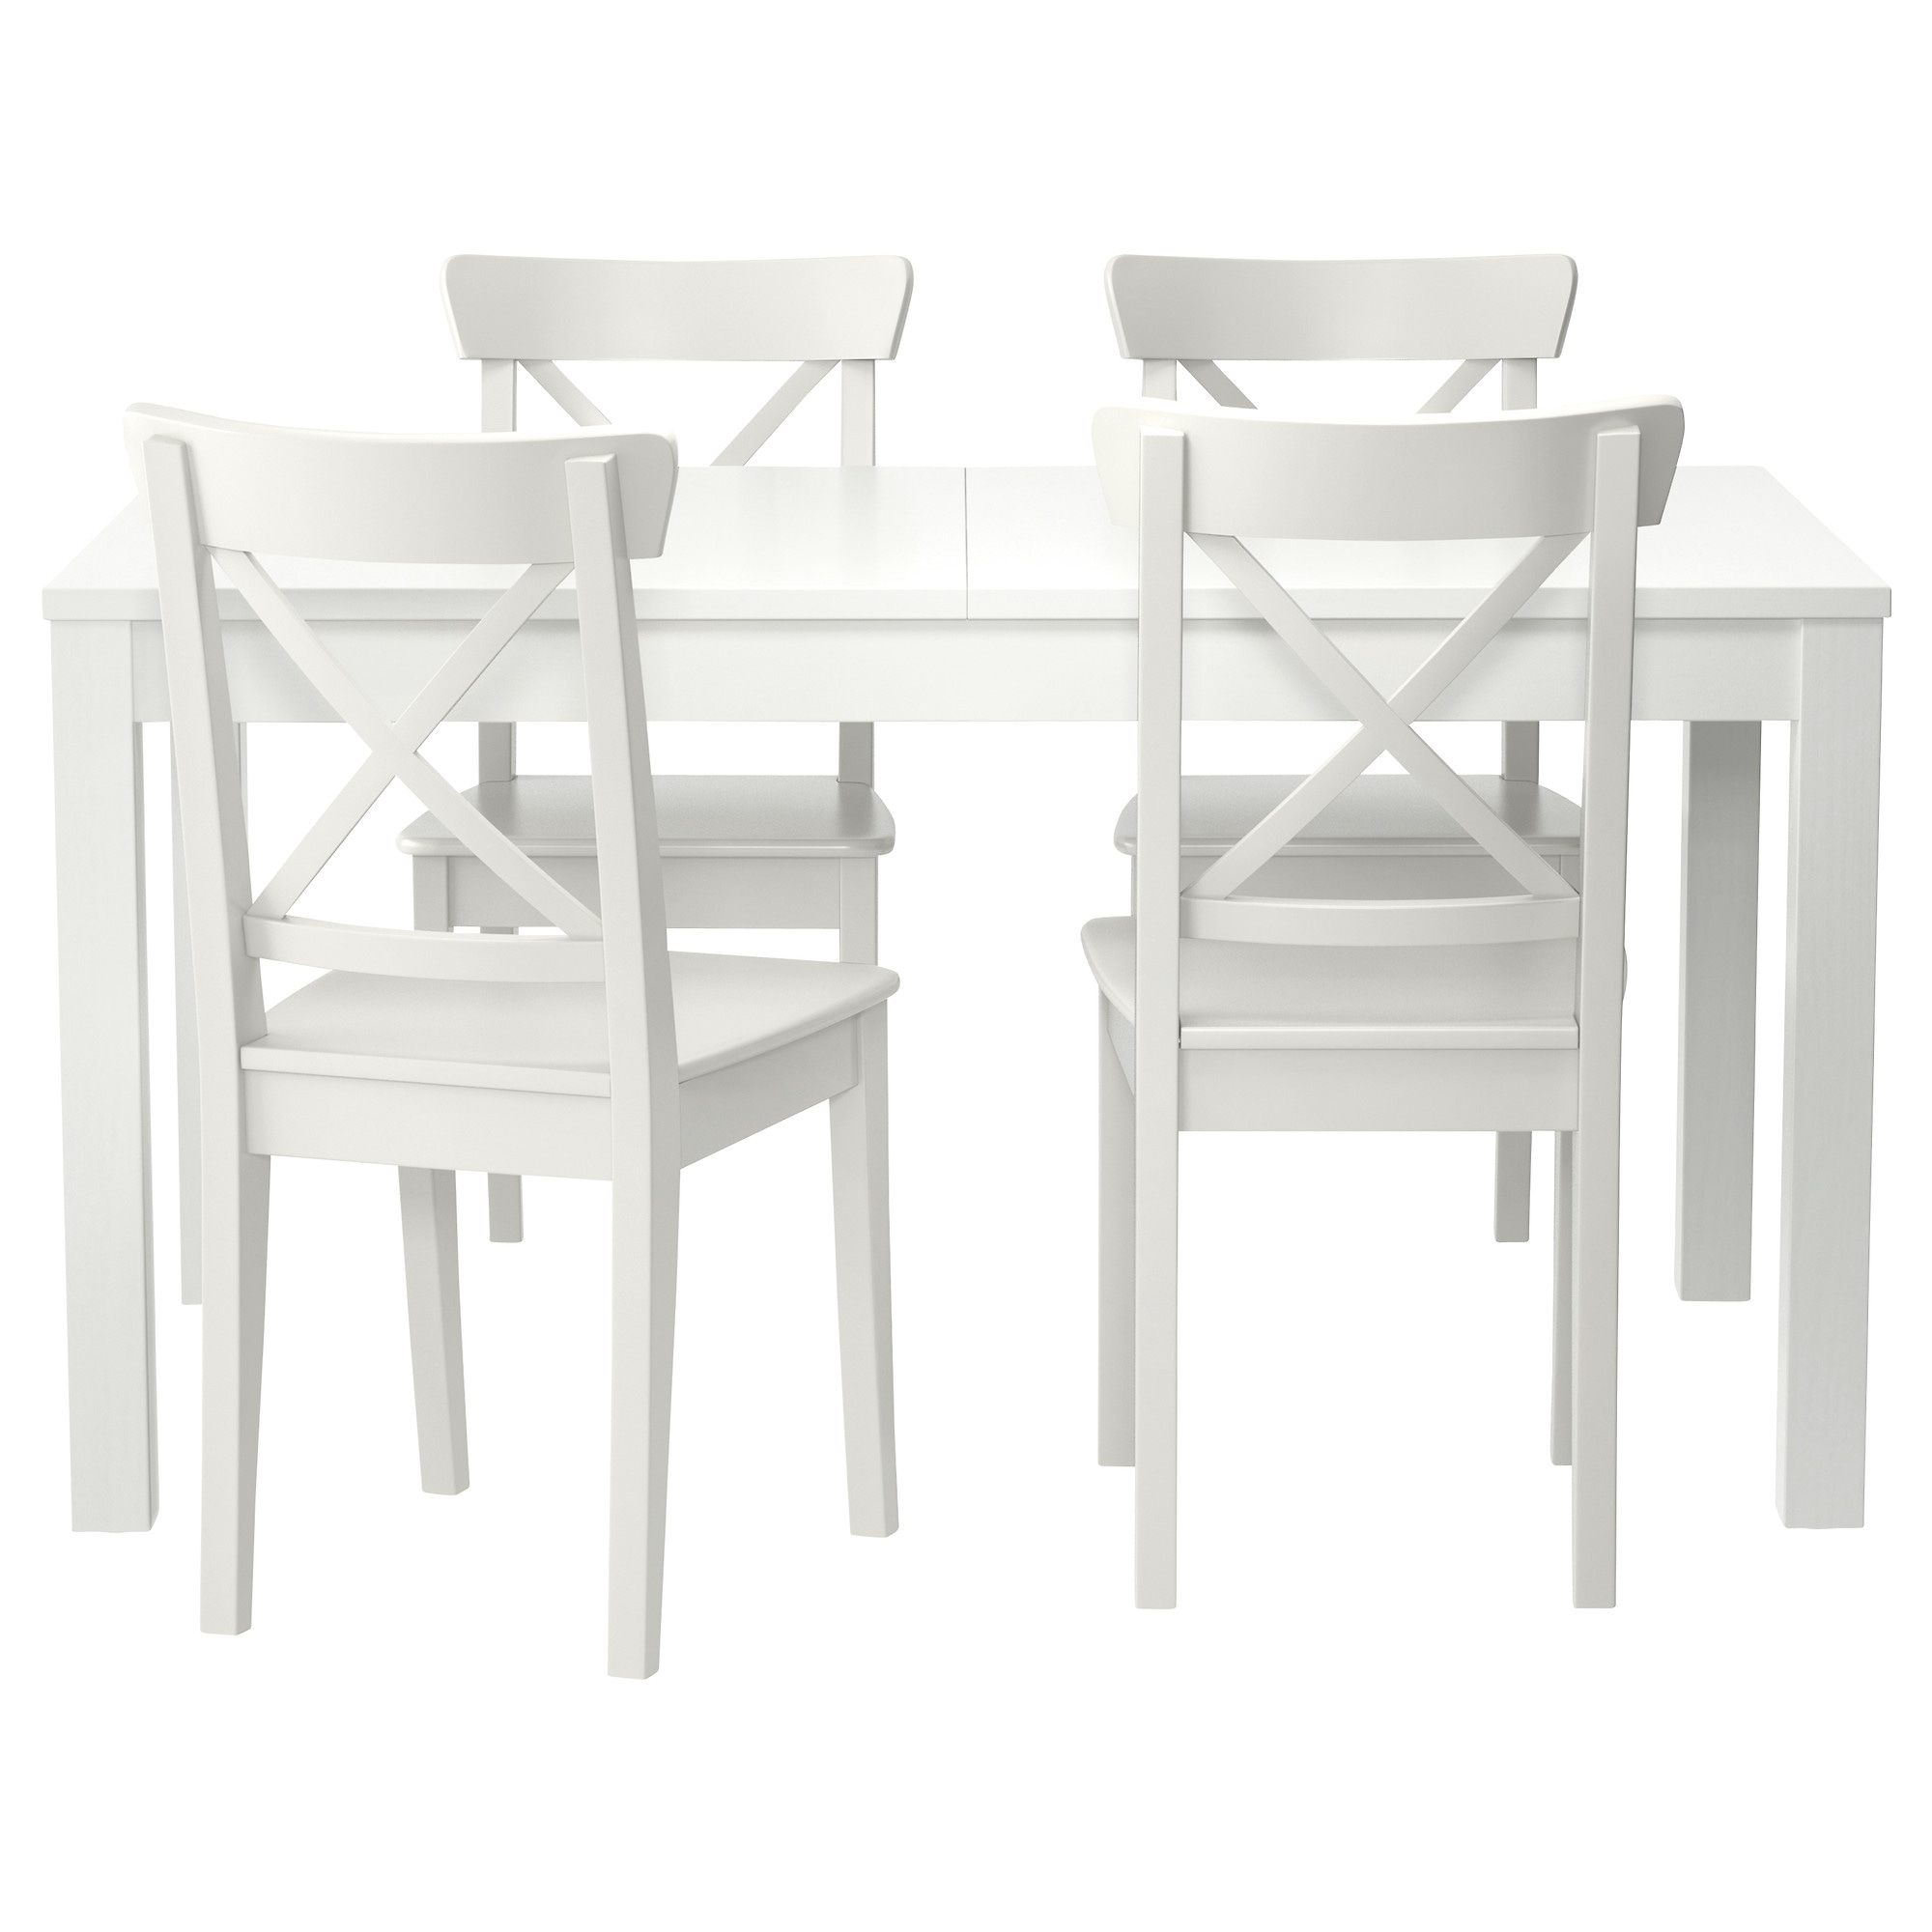 Ikea white dining table and chairs furniture design for Ikea dining sets usa